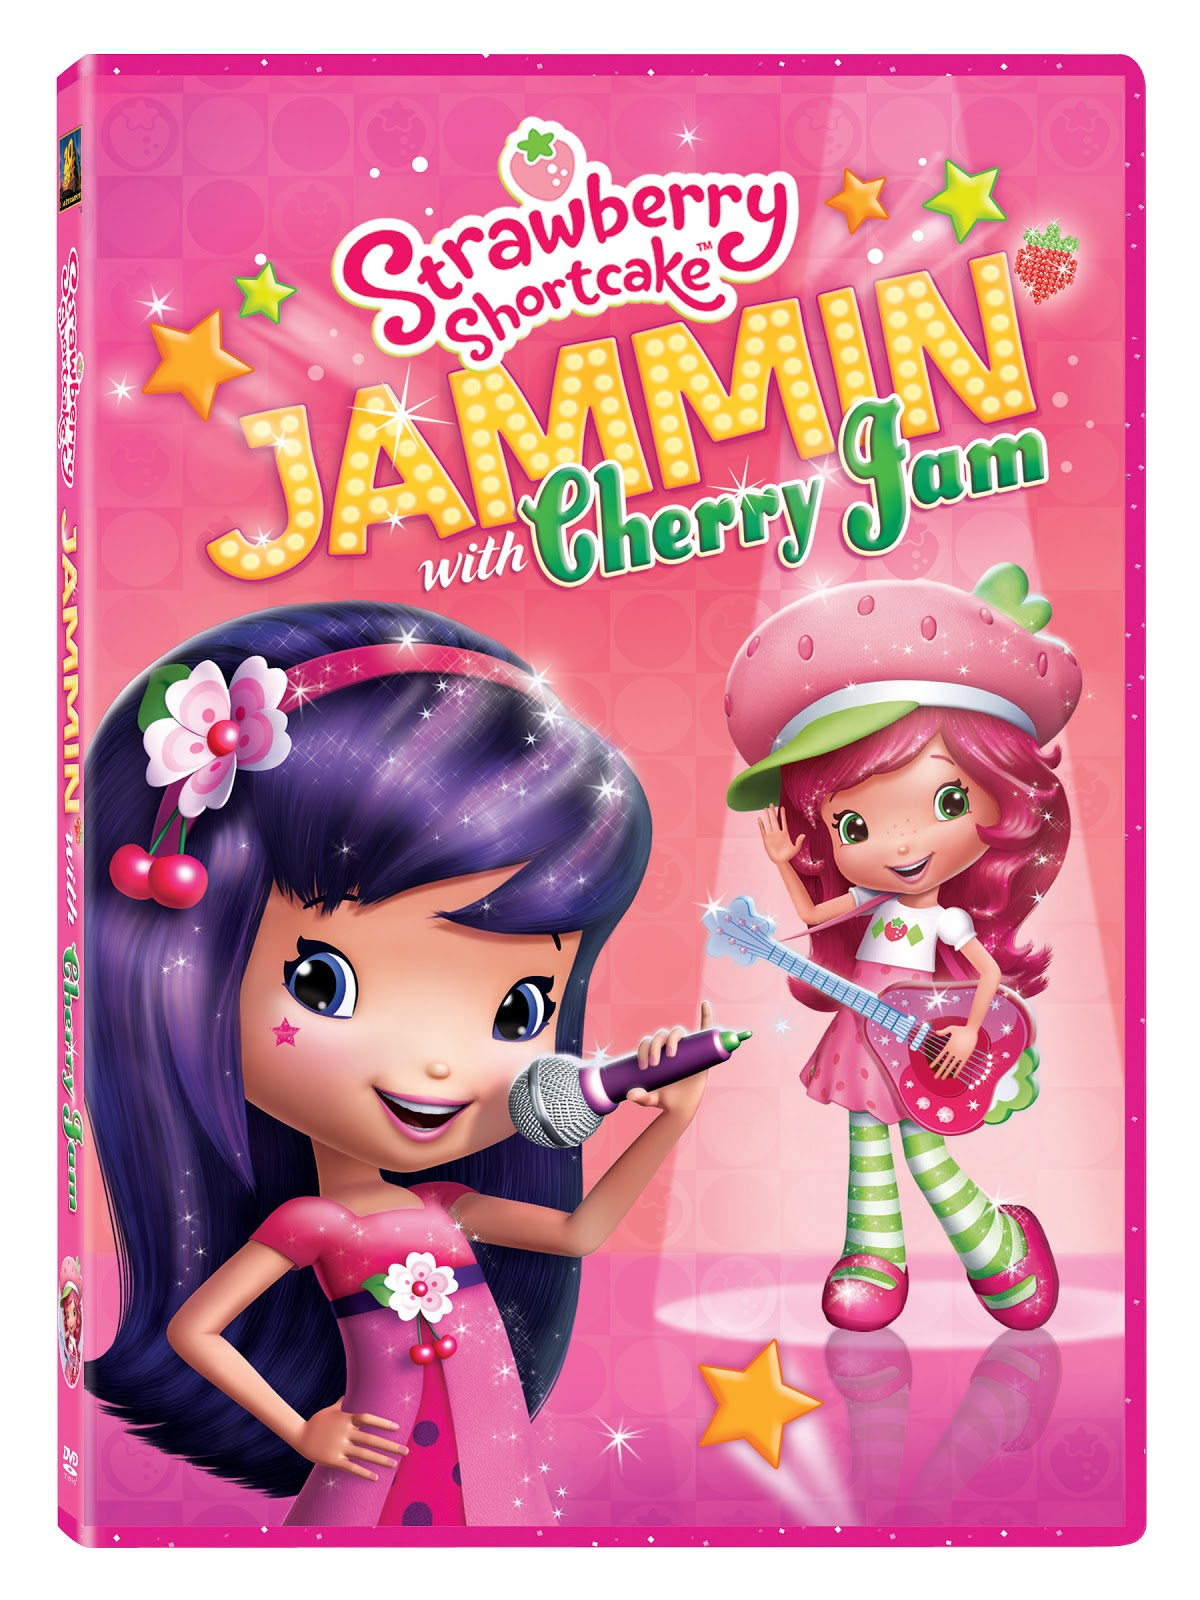 2012 Holiday Gift Guide Strawberry Shortcake Jammin With